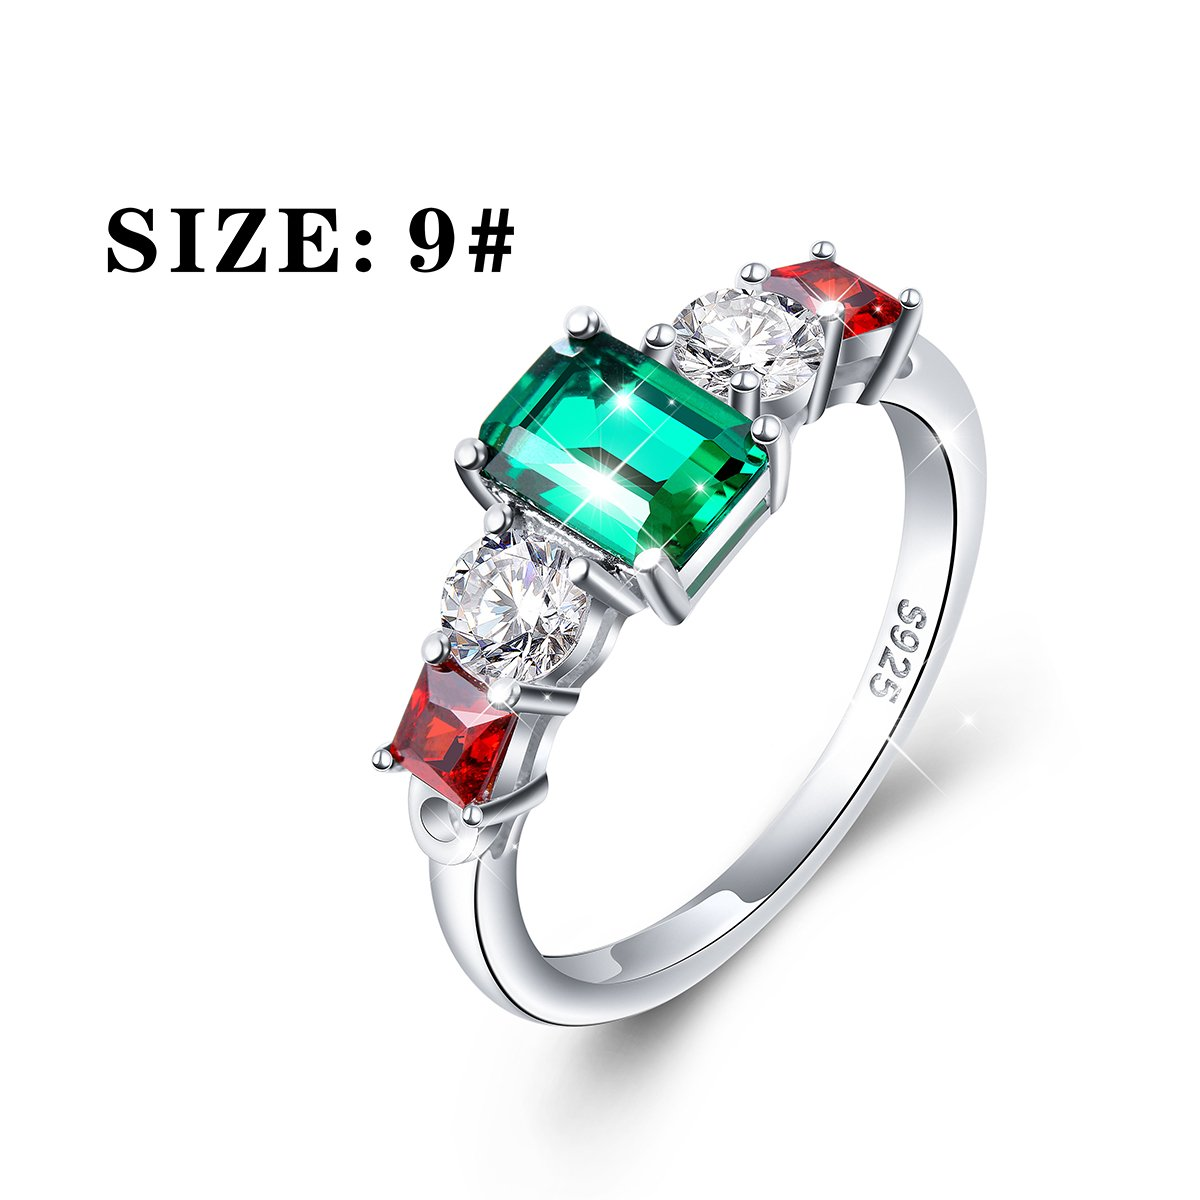 Vintage Elegant Jewelry 925 Sterling Silver Green and Red Cz Ring for Mom Size 9 by SILVER MOUNTAIN (Image #5)